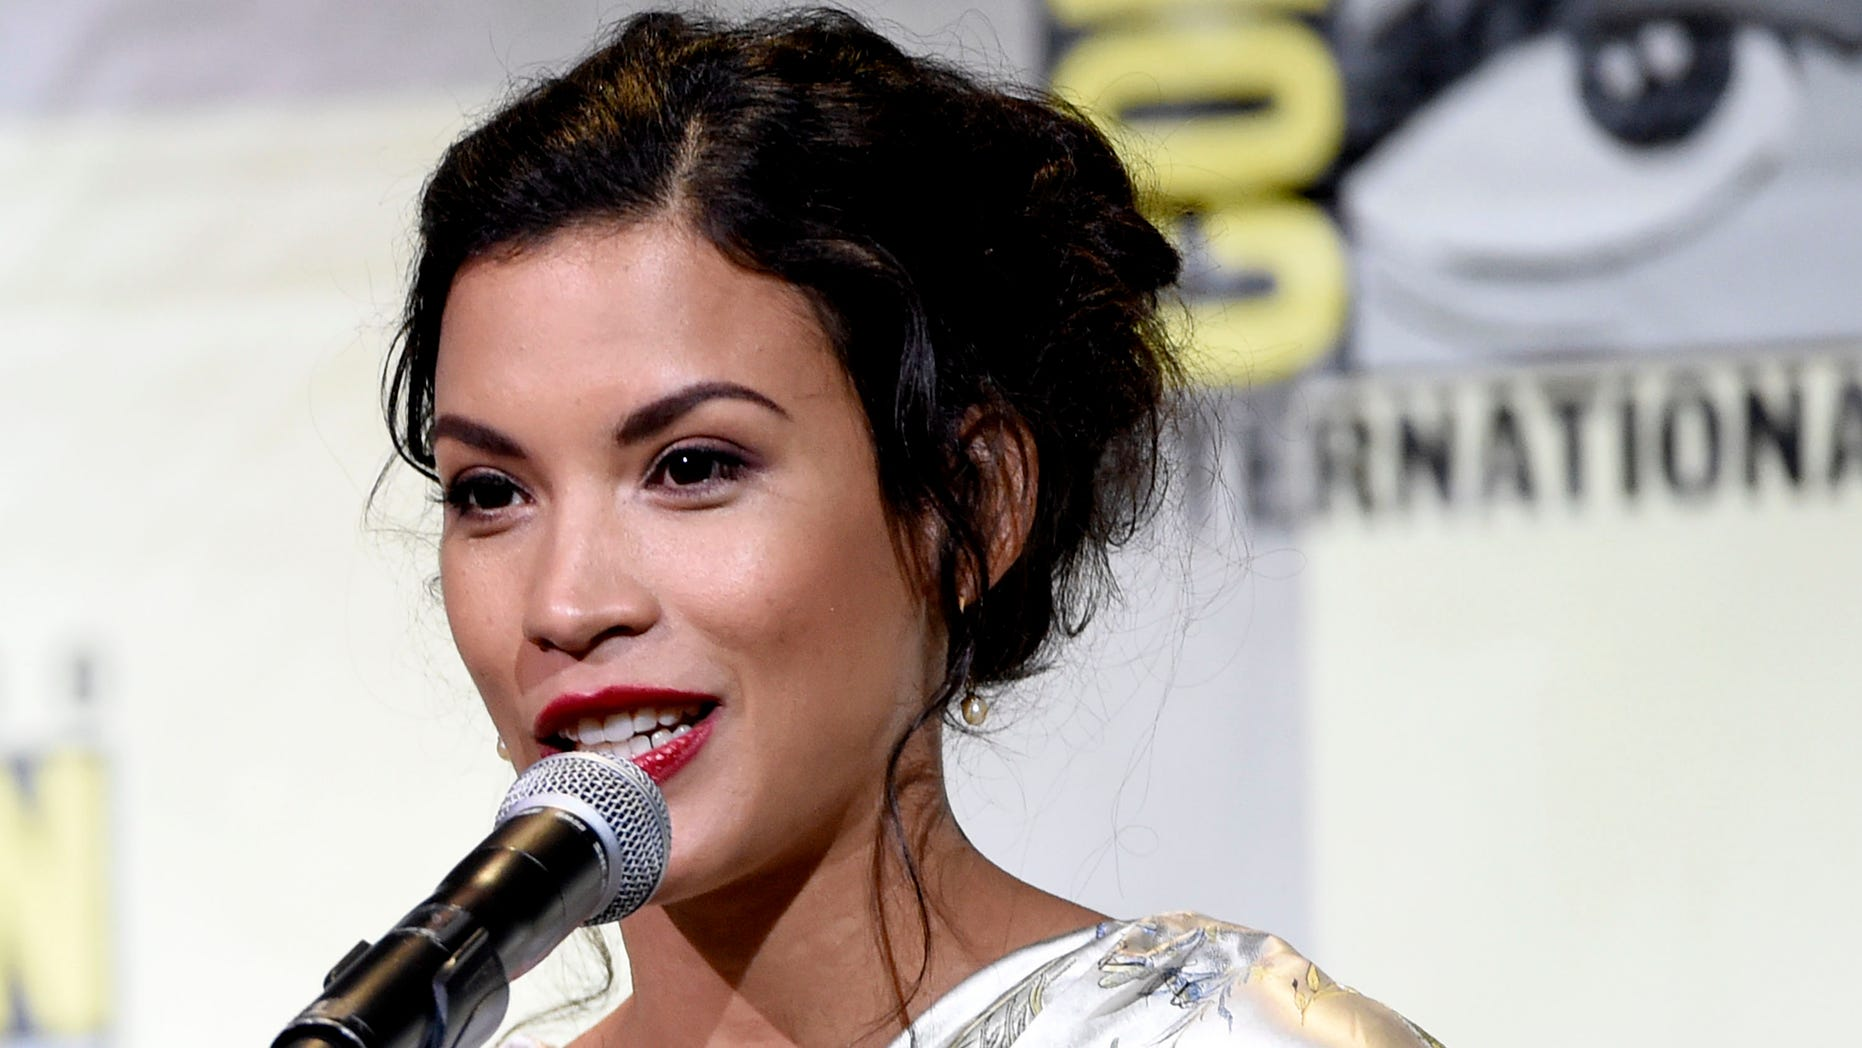 """Danay Garcia attends the """"Fear the Walking Dead"""" panel on day 2 of Comic-Con International on Friday, July 22, 2016, in San Diego. (Photo by Chris Pizzello/Invision/AP)"""